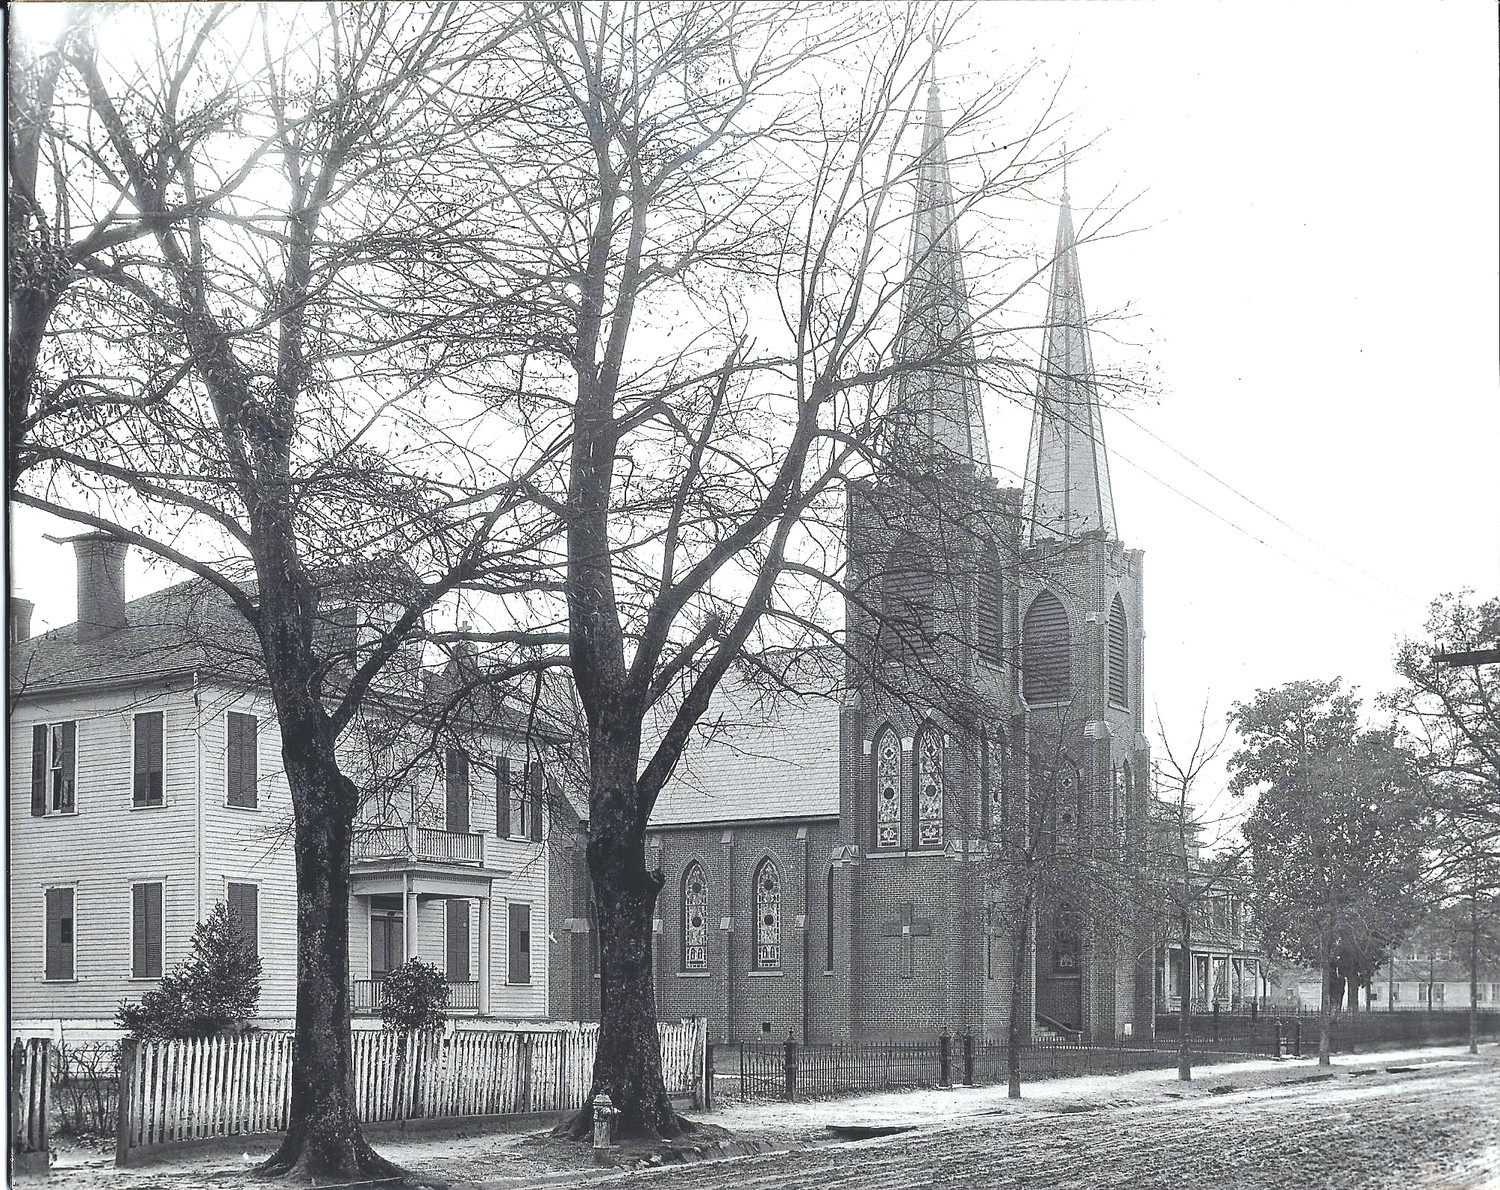 St. Anne's Rectory, St. Anne's Church and St. Joseph's Academy are seen about 1915.